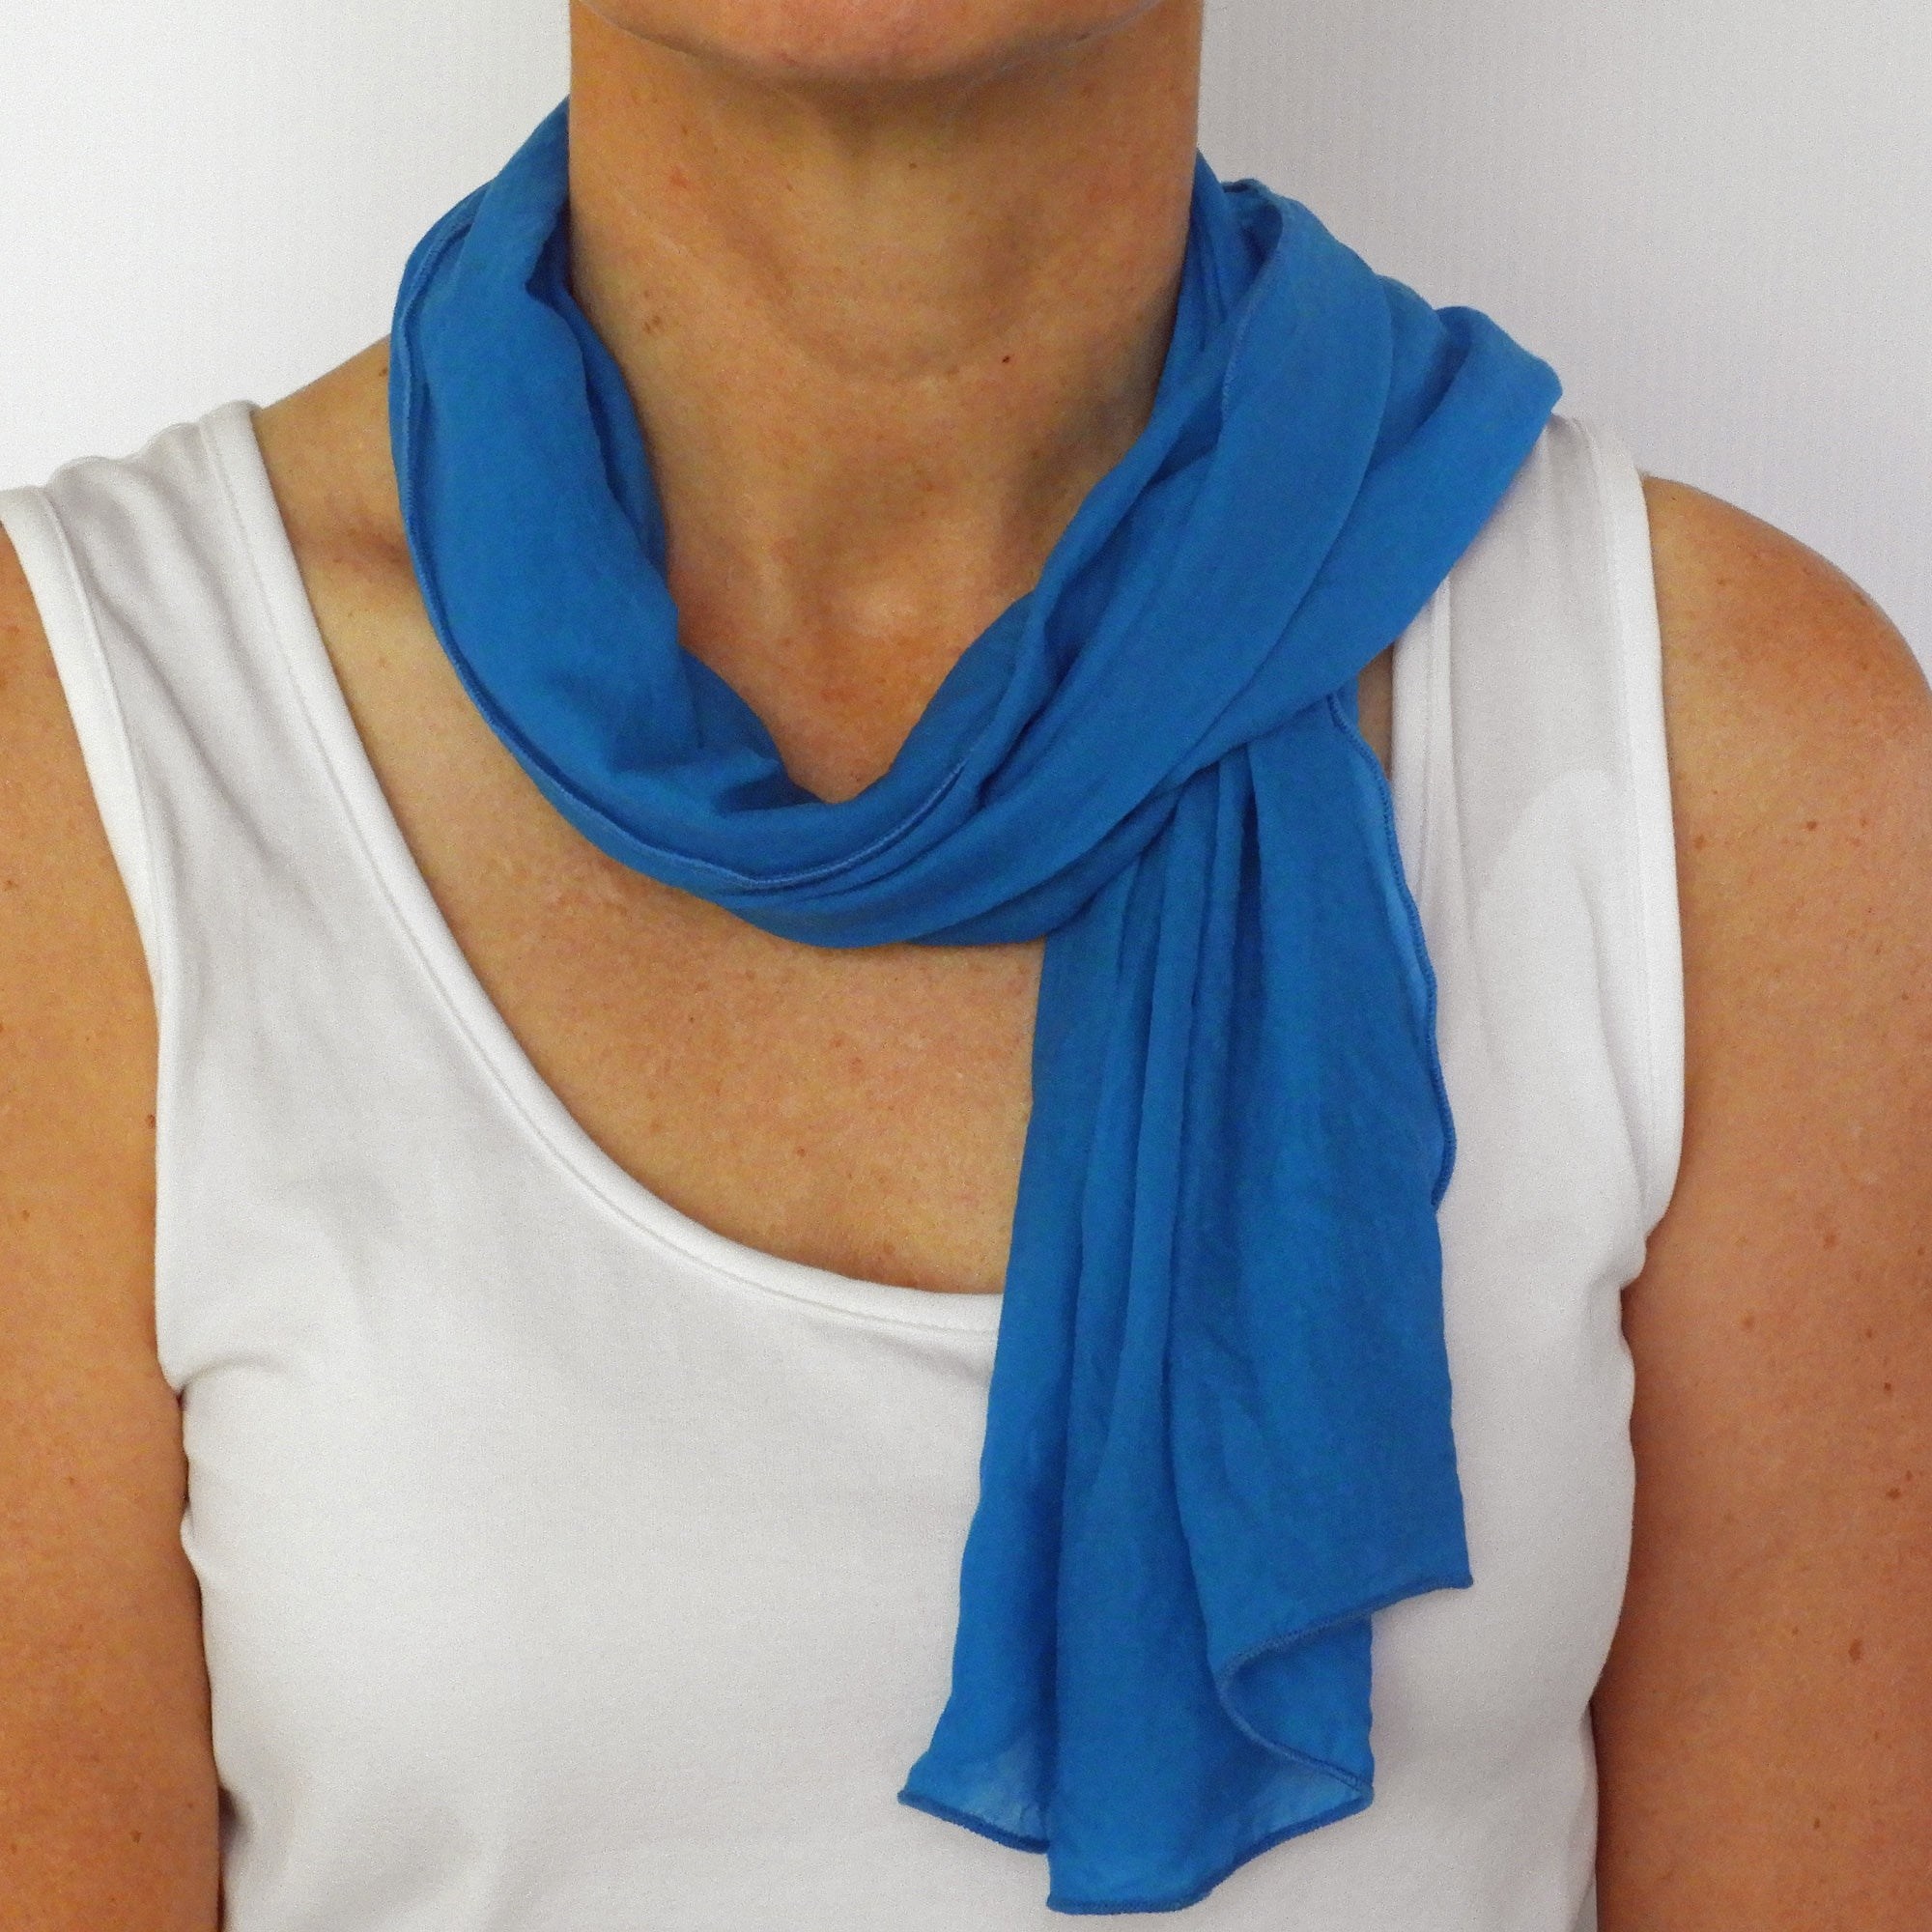 Sophie's turquoise neck-scarf